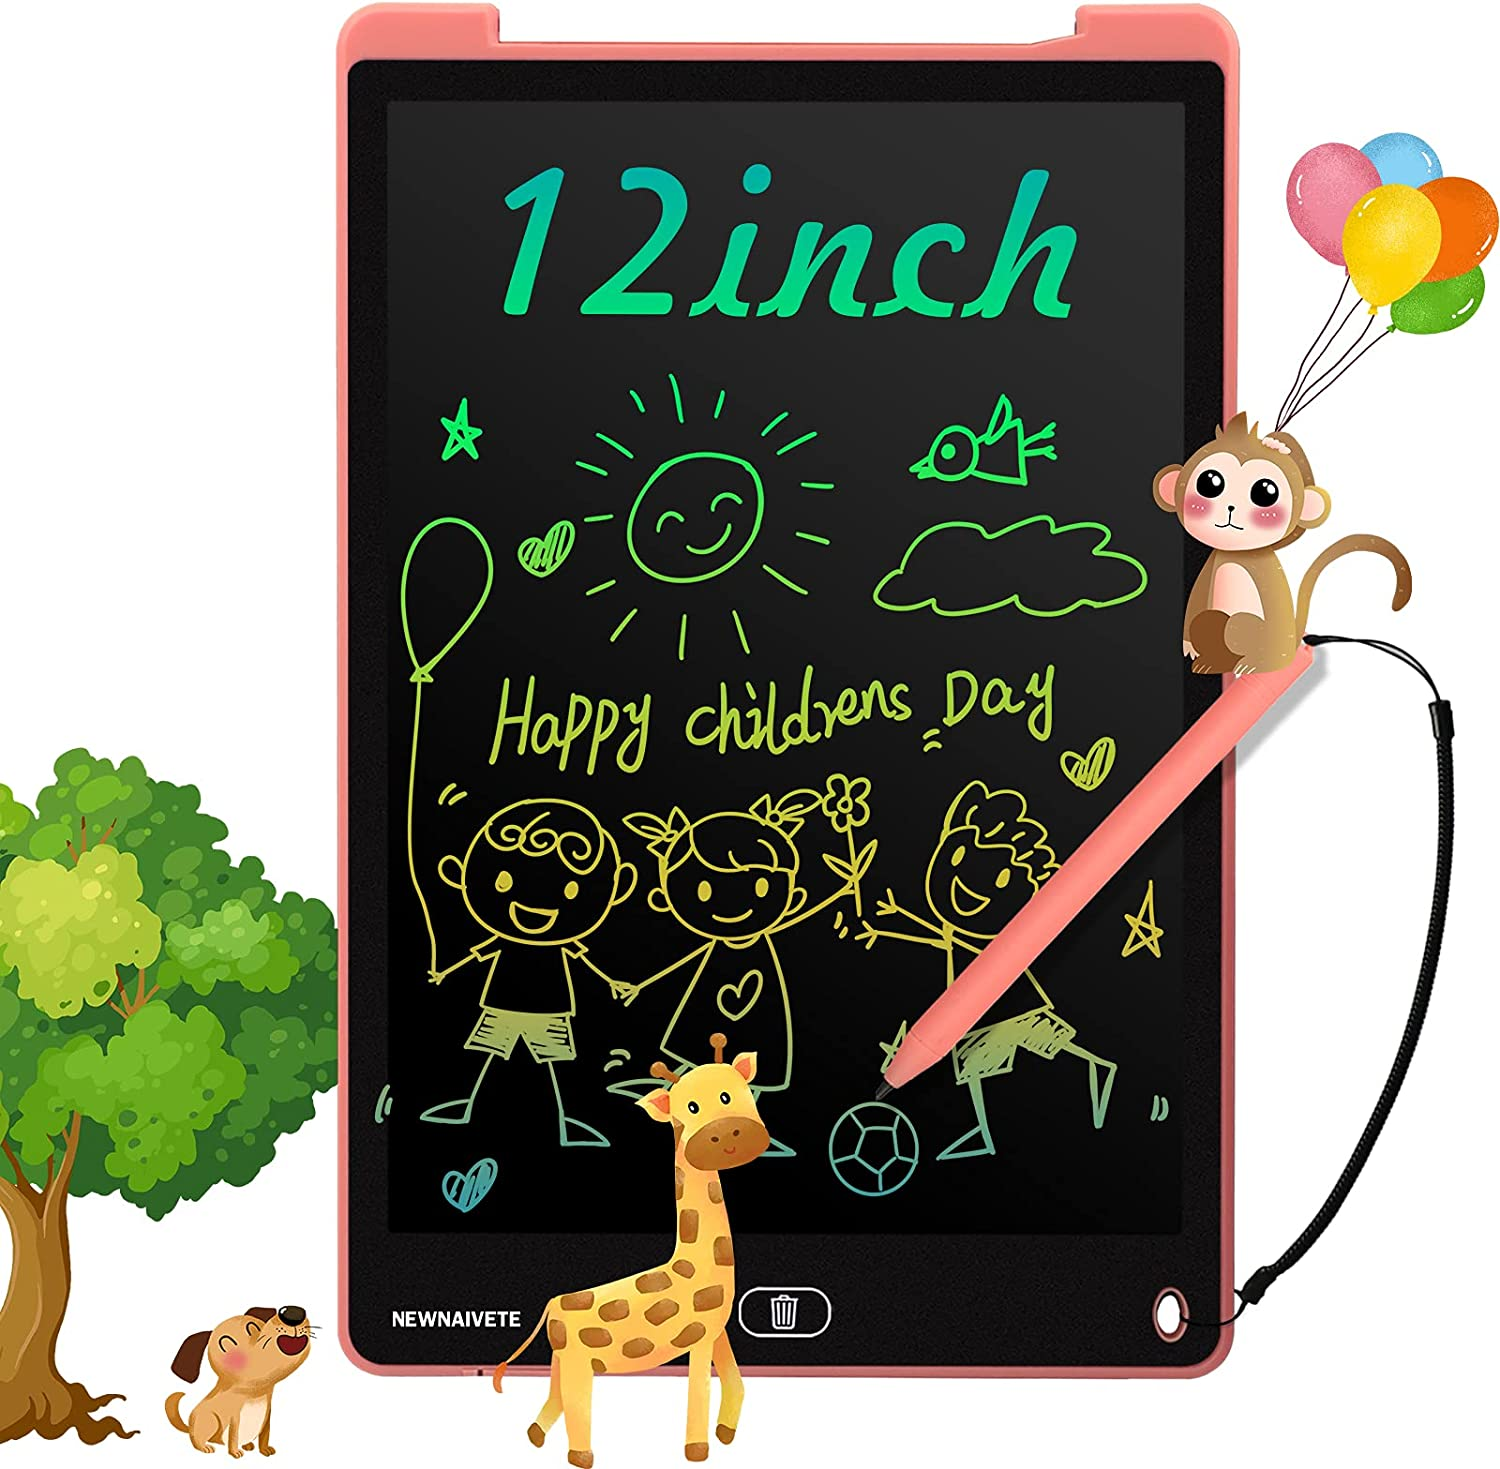 Newnaivete LCD Writing Tablet, 12 Inch Toddler Doodle Board, Colorful Drawing Tablet, Erasable Electronic Drawing Writing Pads, Educational Toys Gifts for Kids Age 3 4 5 6 7 8 Year Old Girls Boys